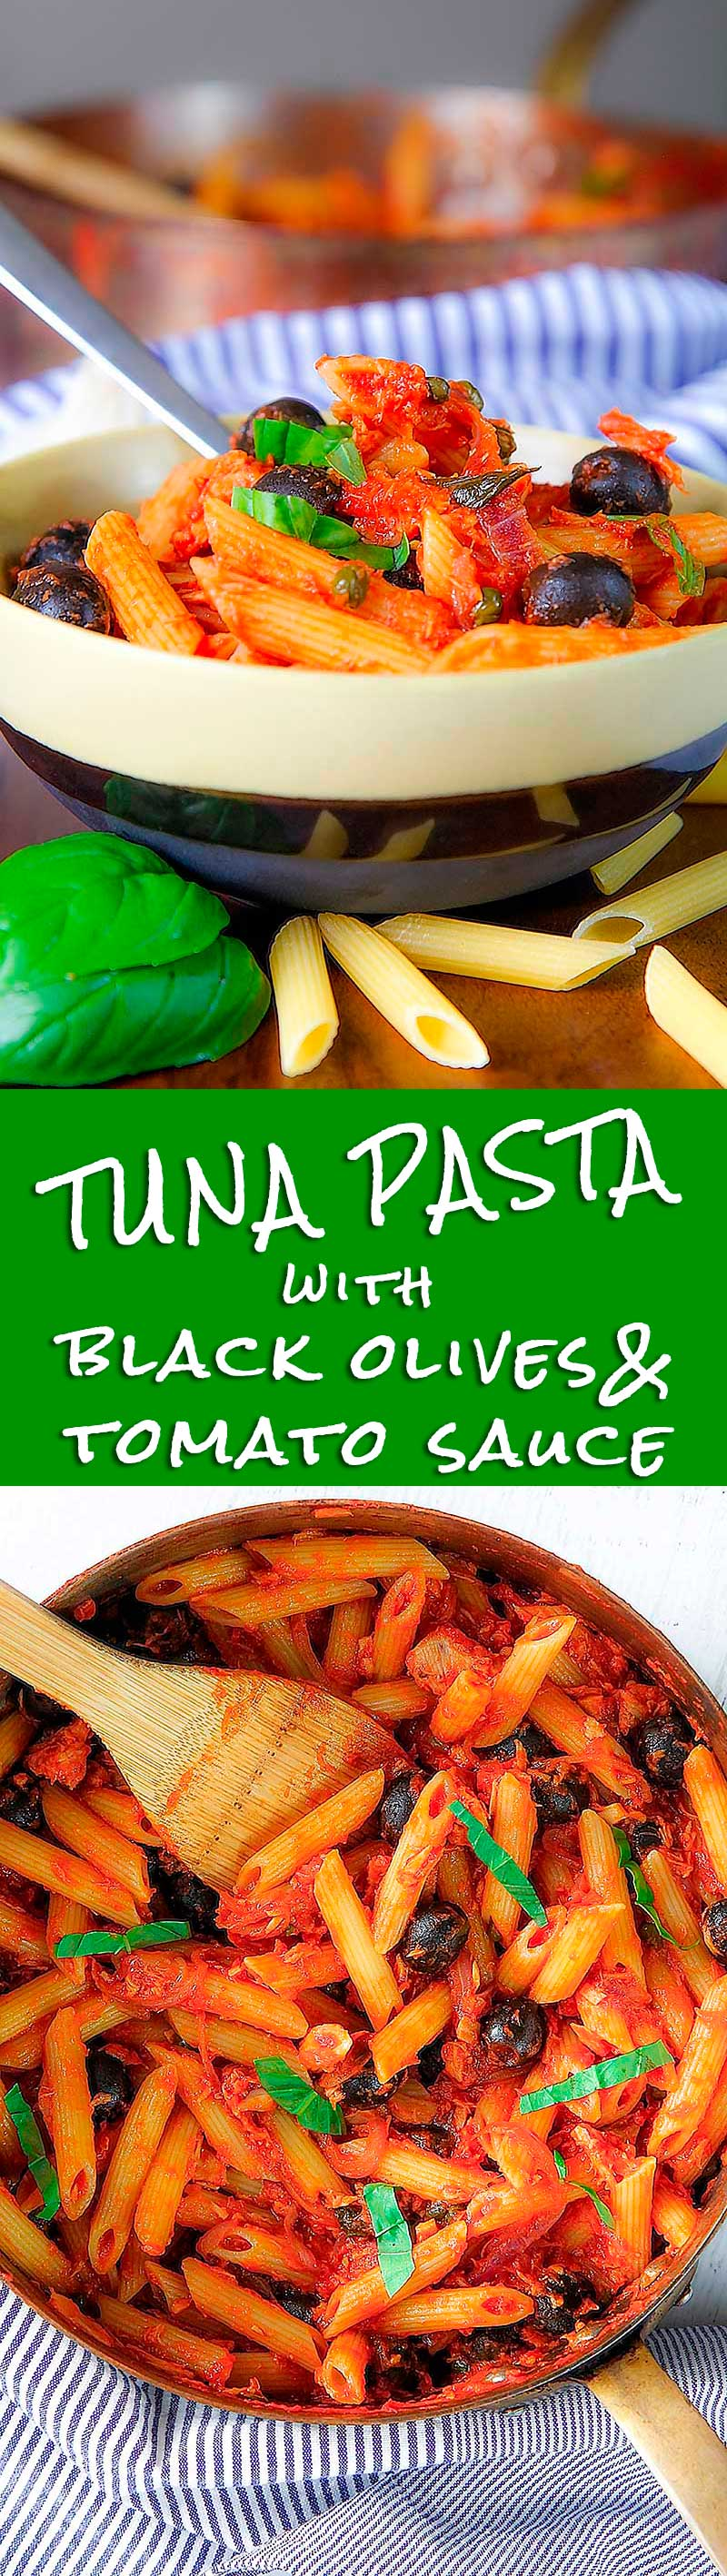 TUNA PASTA with olives capers and tomato sauce